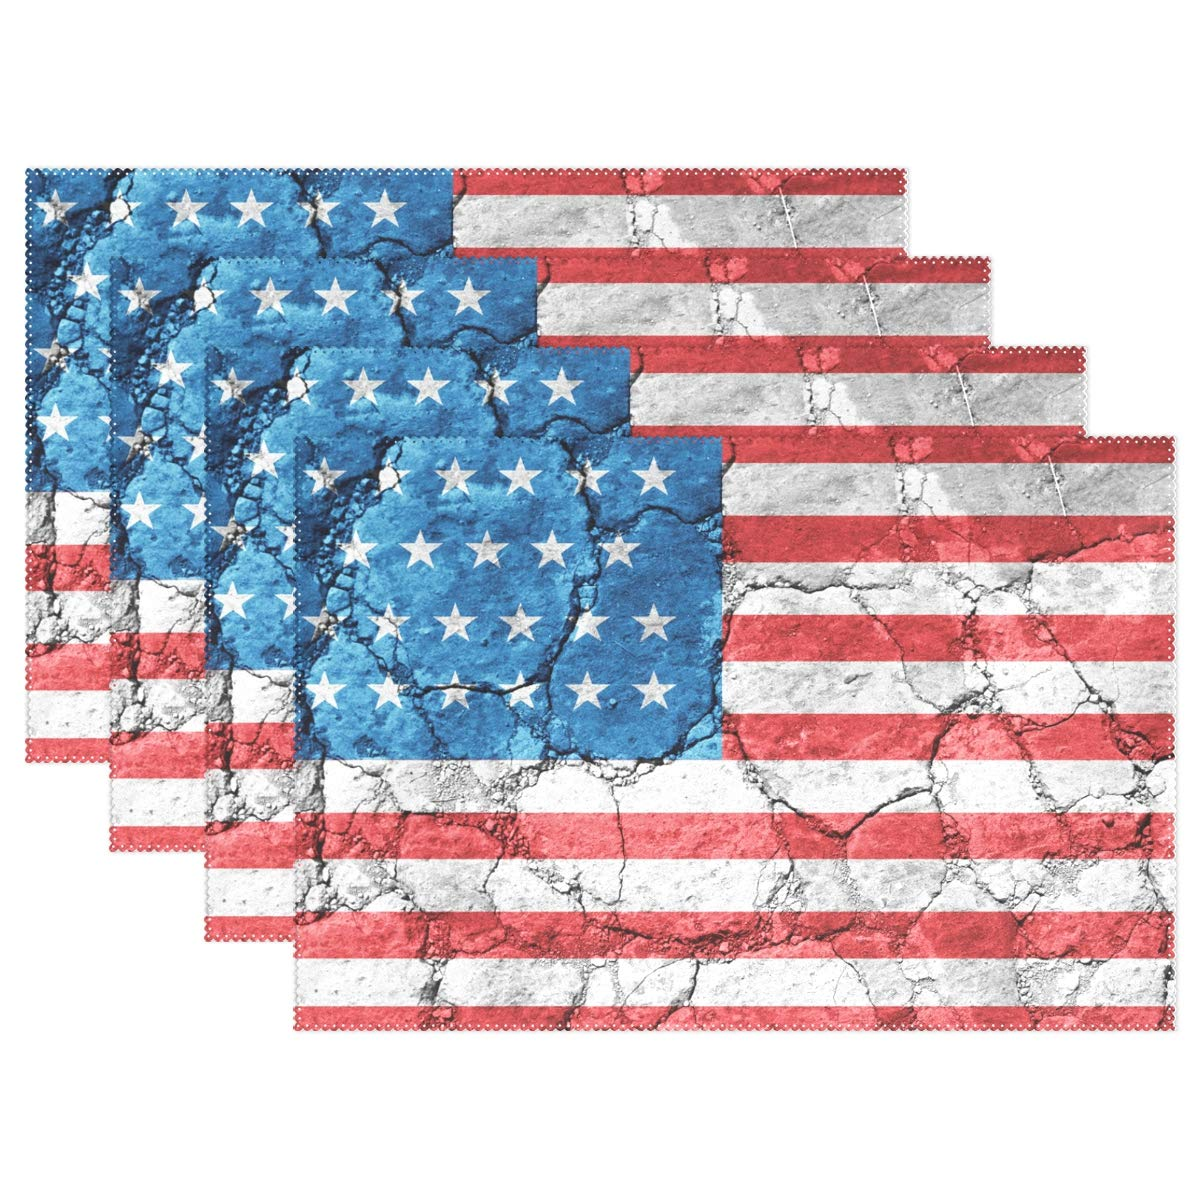 baihuishop United States of America Flag Placemats Heat-Resistant Washable Table Mats 12 X 18 Inch Placemats for Family Kitchen Hotel Coffee Shop Dinning Restaurant Set of 6